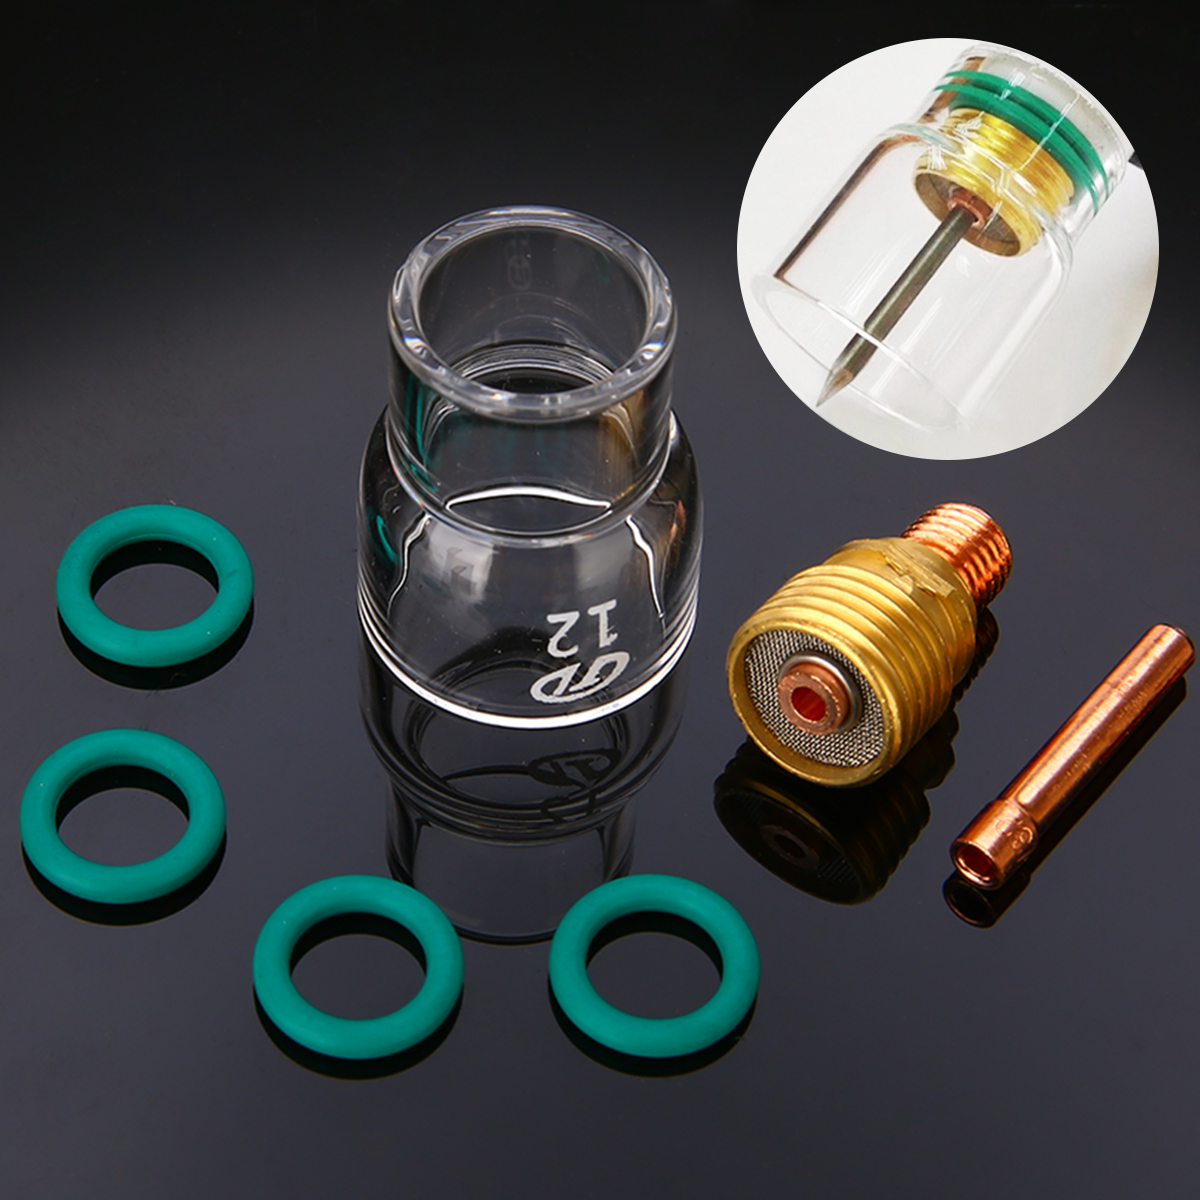 7pcs/set  #12 Pyrex Glass Cup Kit Stubby Collets Body Gas Lens TIG Welding Torch For WP-9/ 20/ 25 Mayitr Welding Accessories